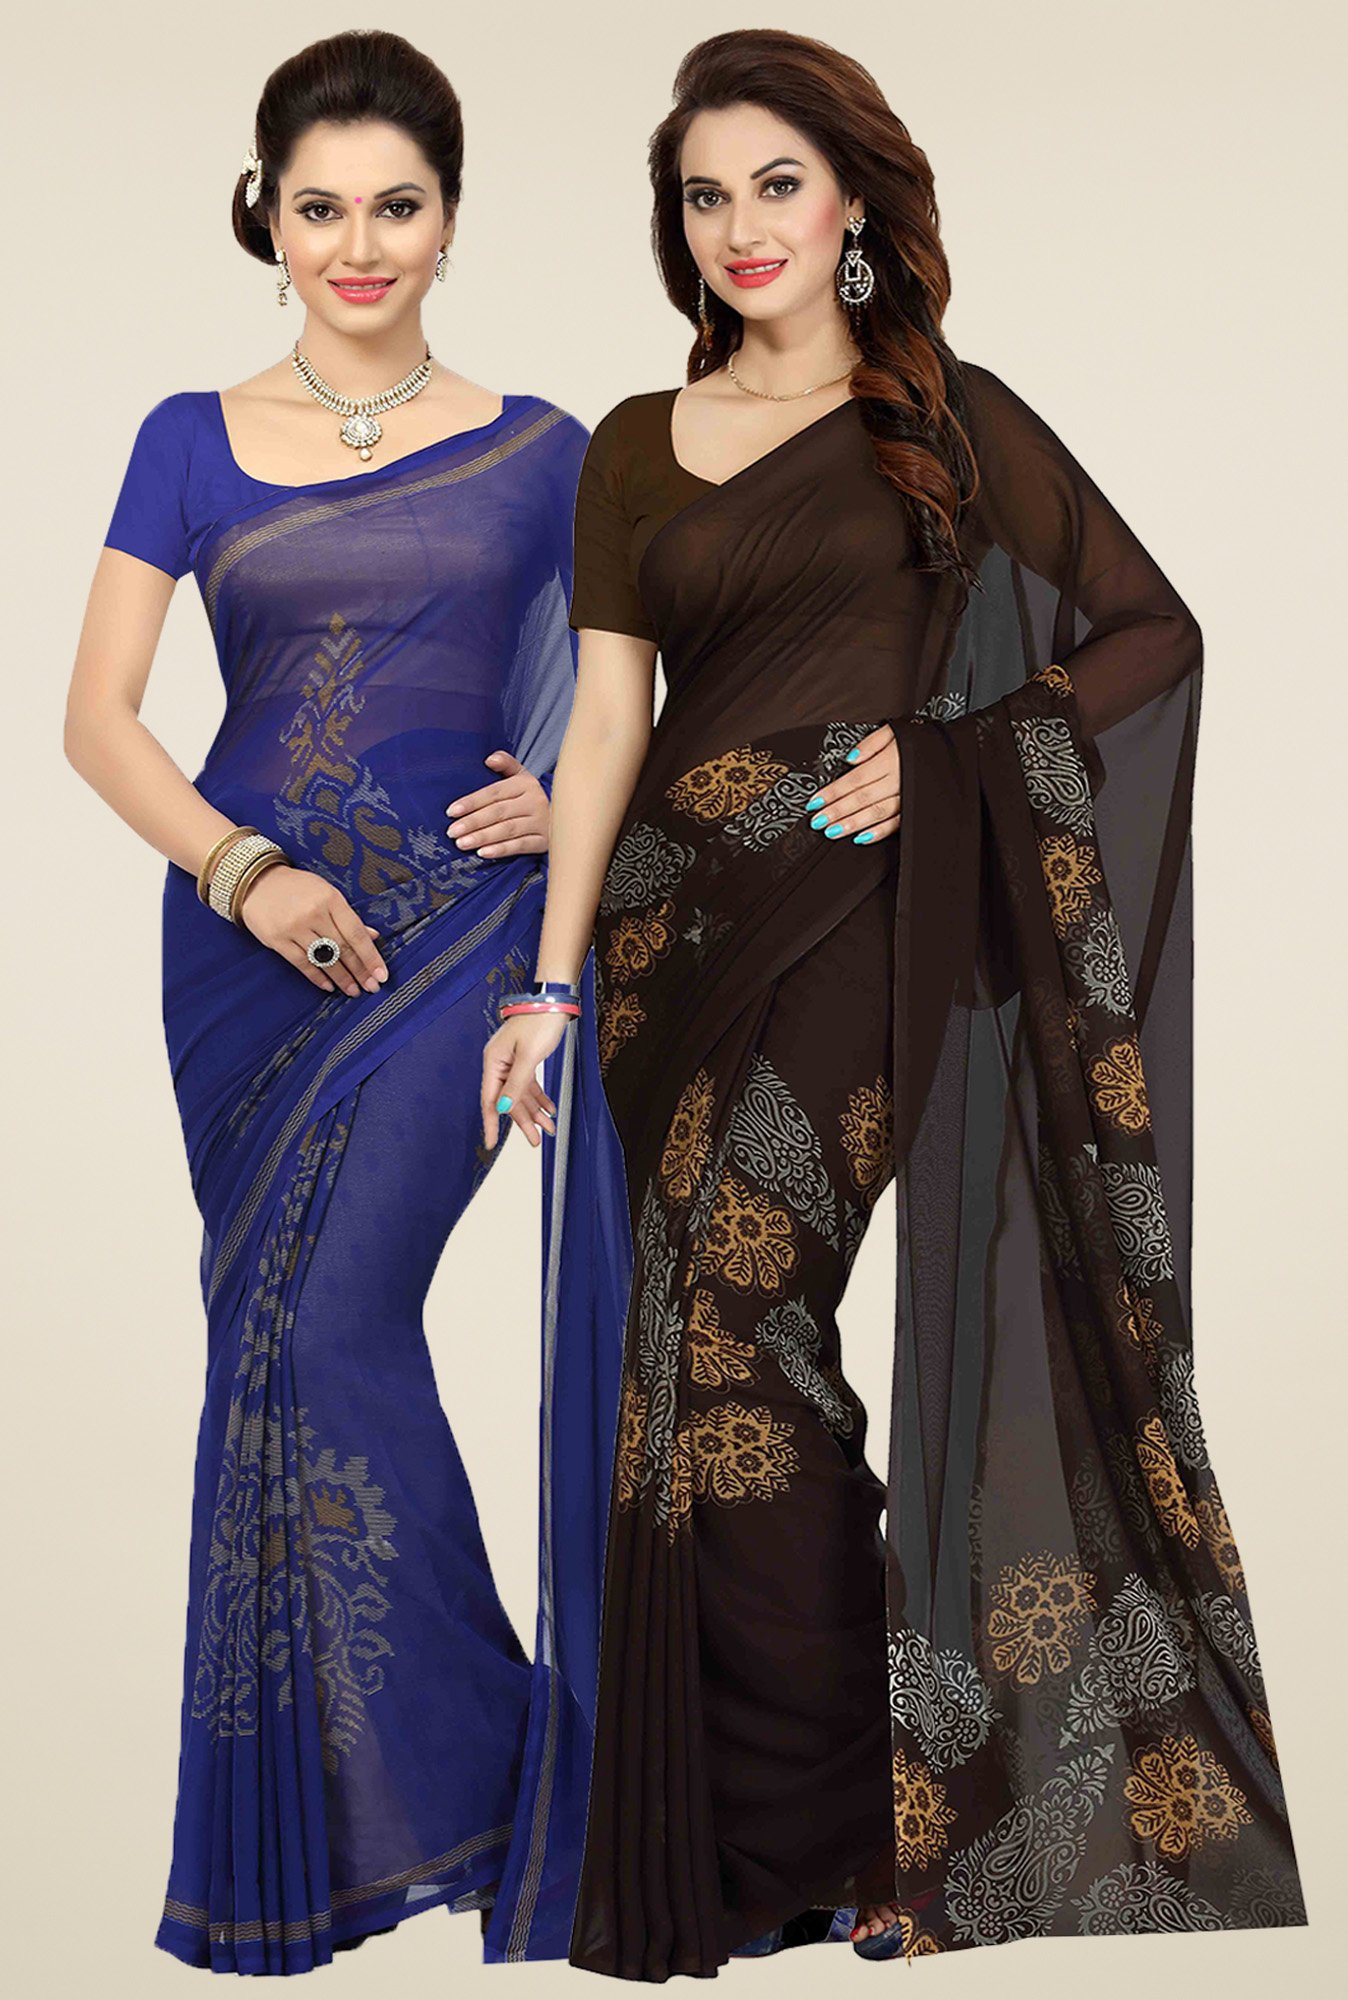 Ishin Blue & Brown Printed Sarees (Pack of 2)